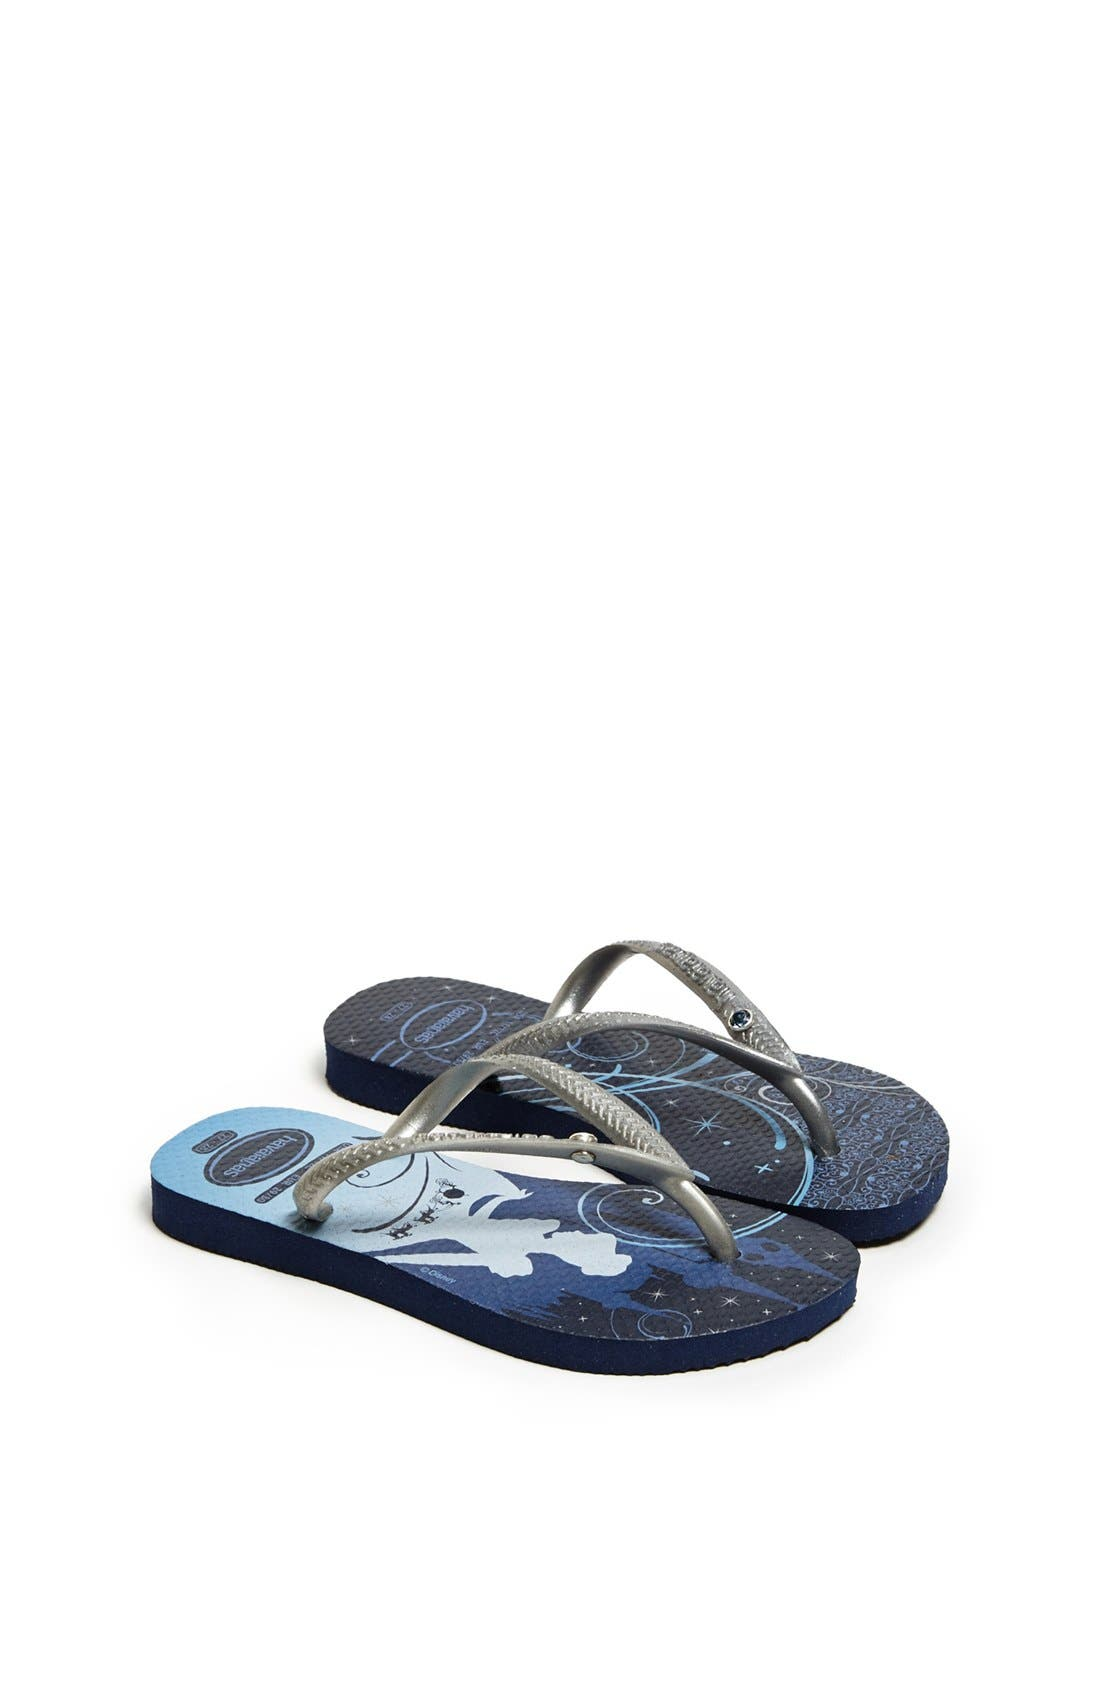 Alternate Image 1 Selected - Havaianas 'Slim Princess Glam' Flip Flop (Toddler & Little Kid)